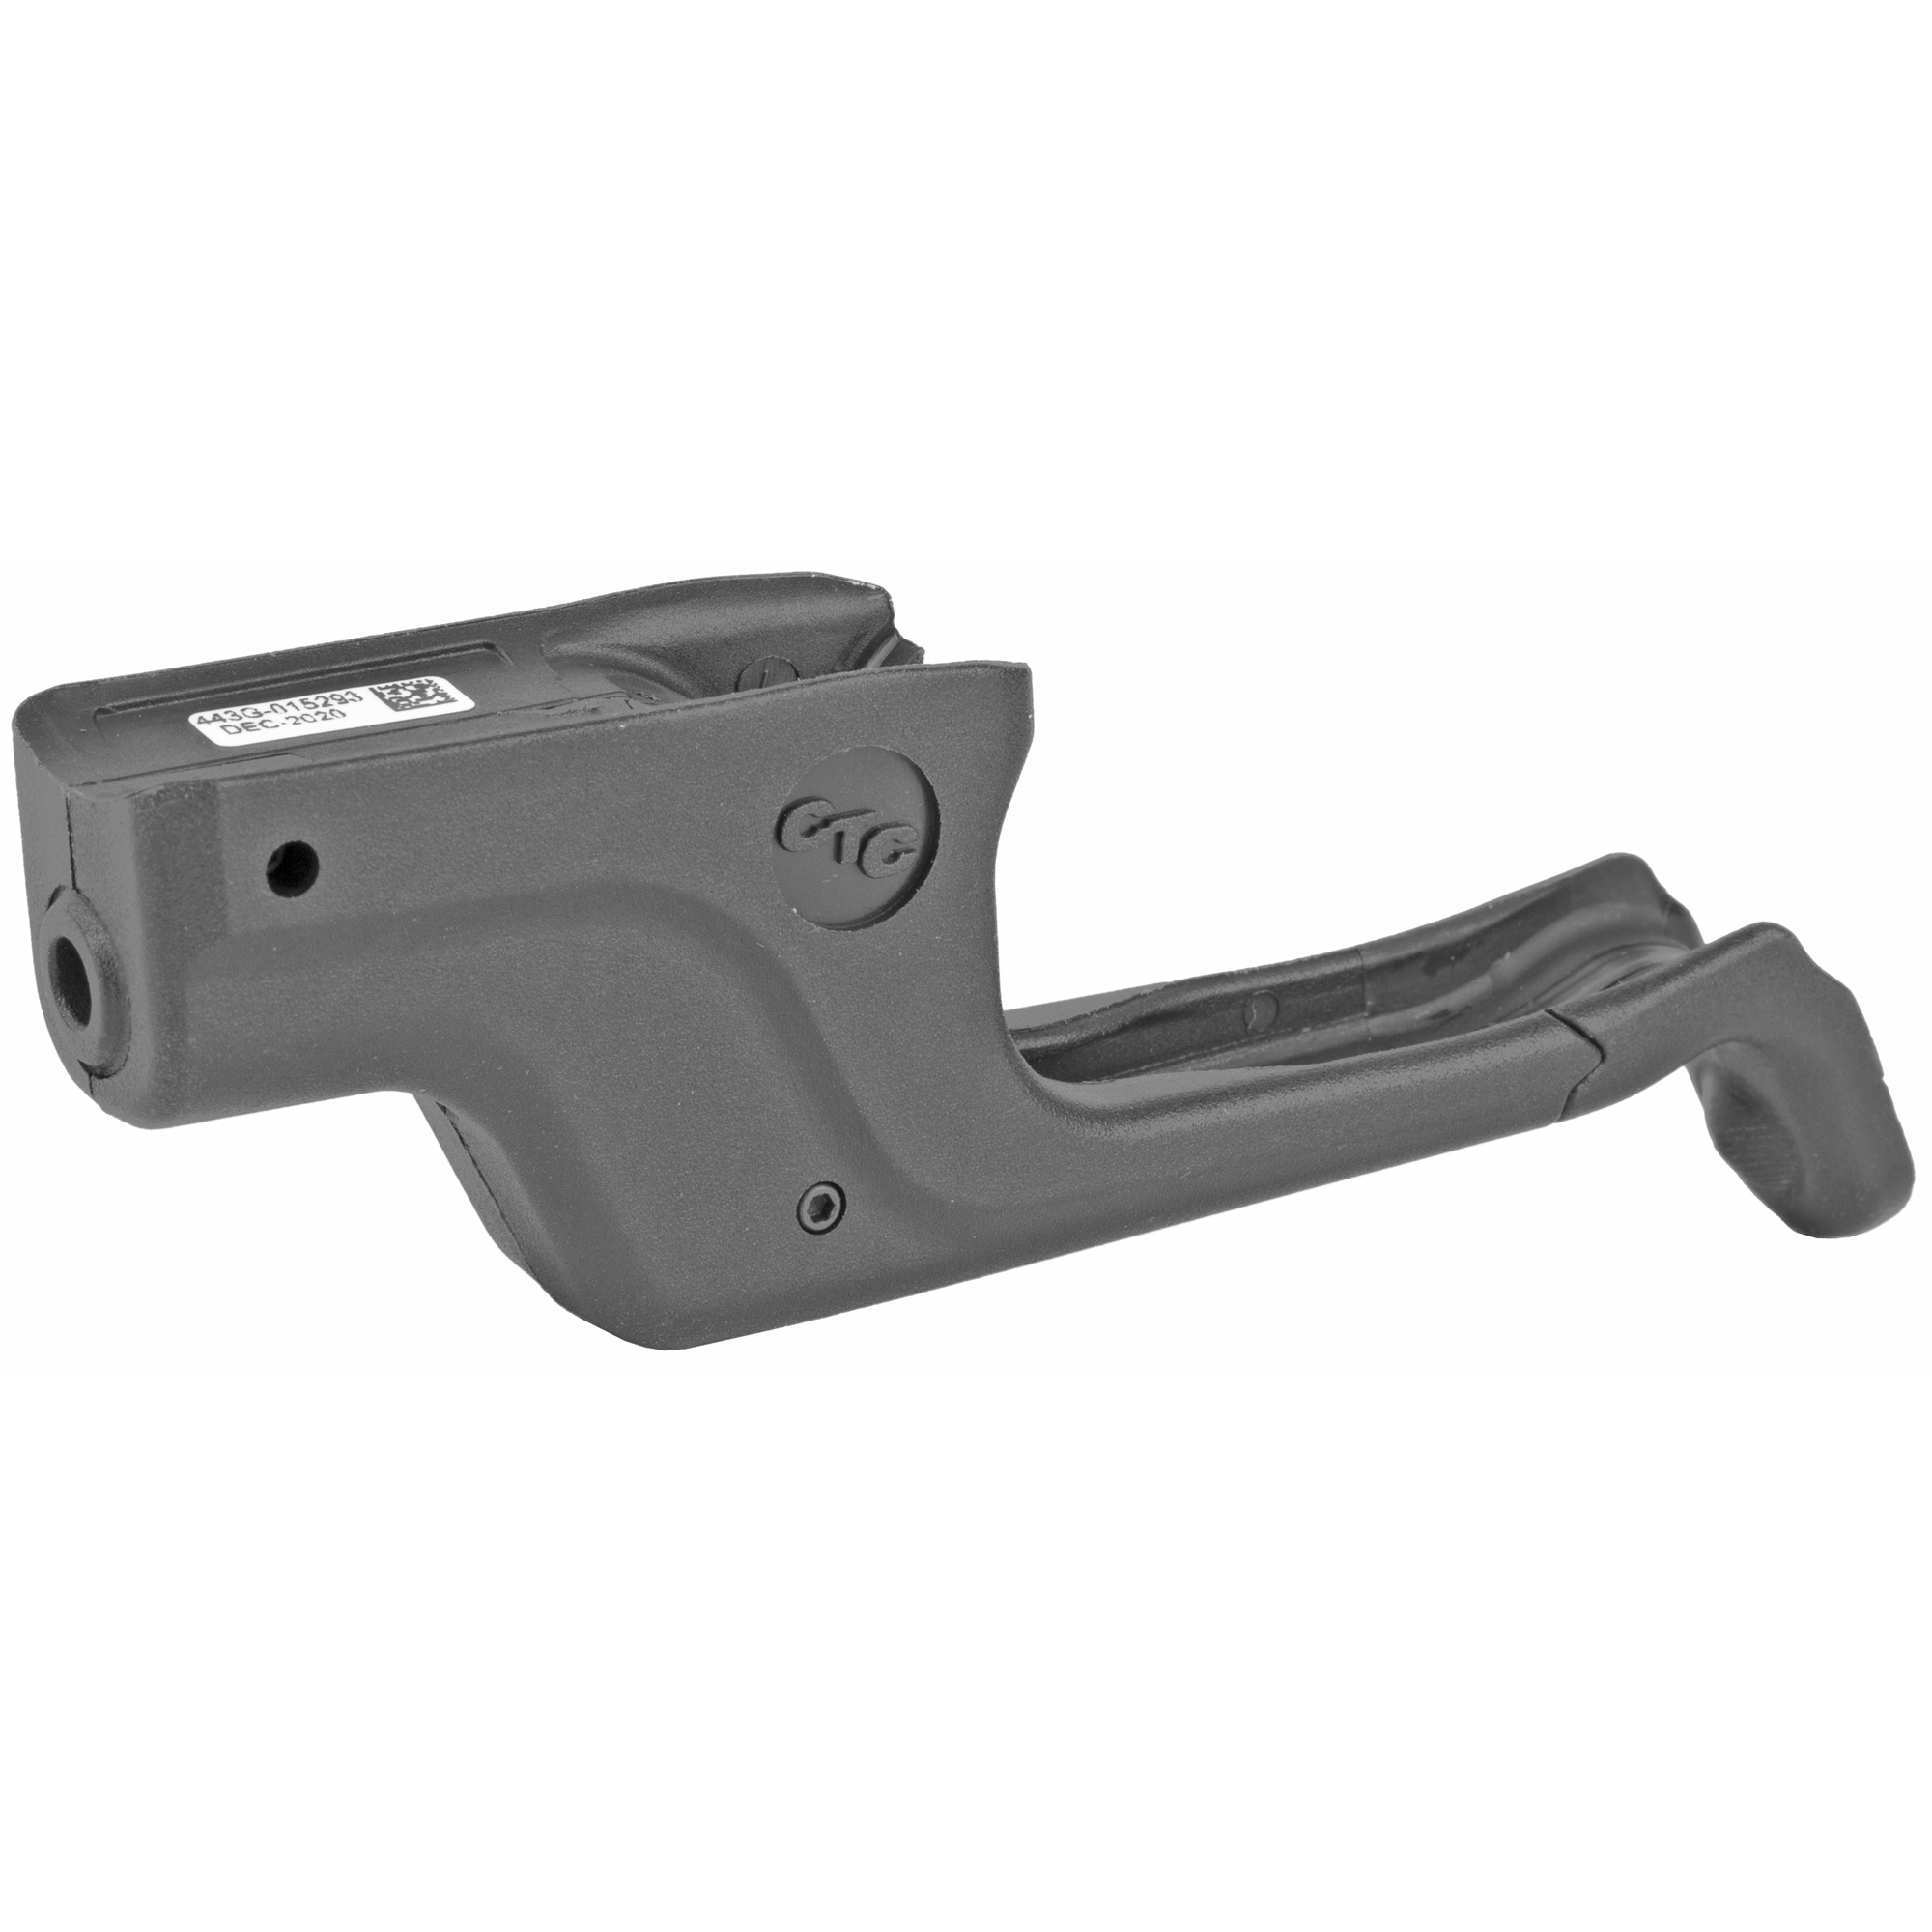 """The LG-443G Laserguard(R) green laser sight fits GLOCK's(R) slimline G42"""" G43"""" G43X and G48 by securing firmly around the trigger guard. The Laserguard(R) features Instinctive Activation(TM)"""" which allows the user to activate the laser sight by simply gripping the pistol in a normal firing grip. User-installed in moments"""" the LG-443G is also fully user-adjustable for windage and elevation and offers more than two hours of battery life."""